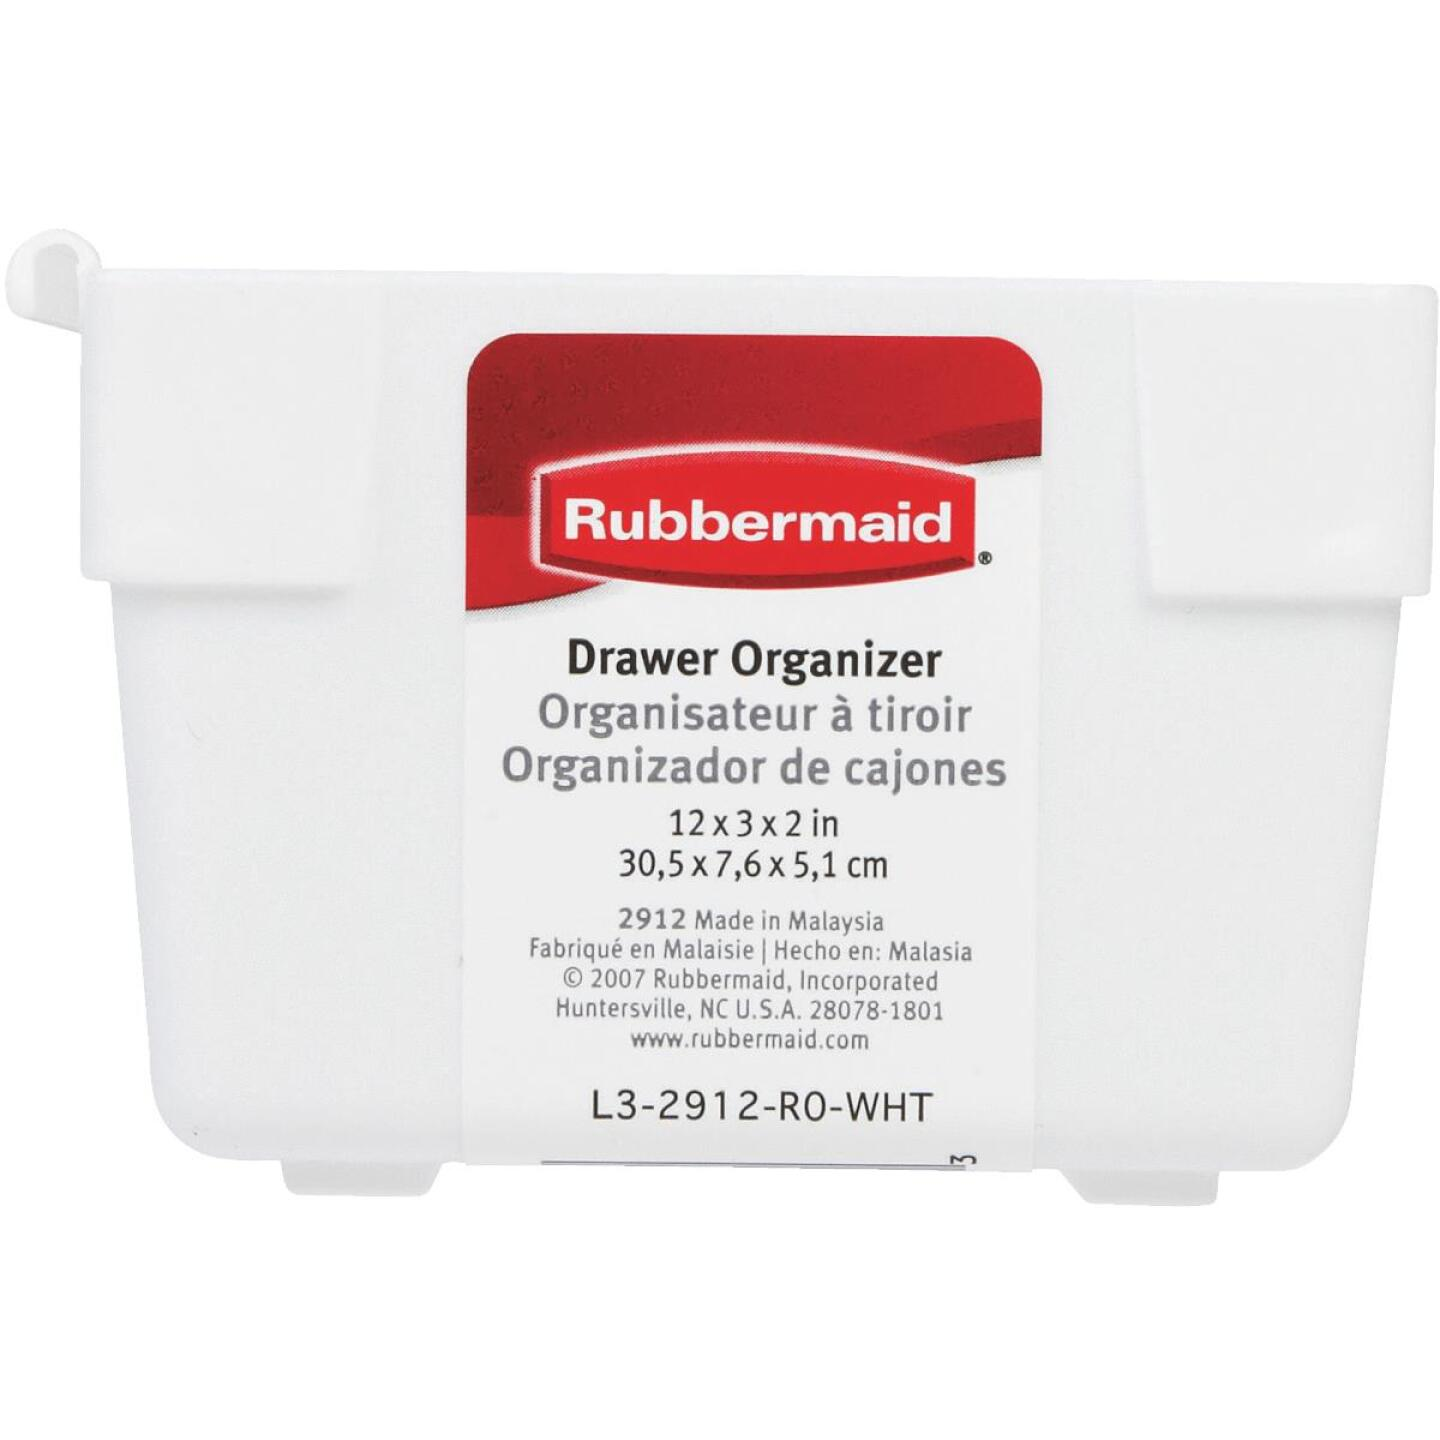 Rubbermaid 3 In. x 12 In. x 2 In. White Drawer Organizer Tray Image 3